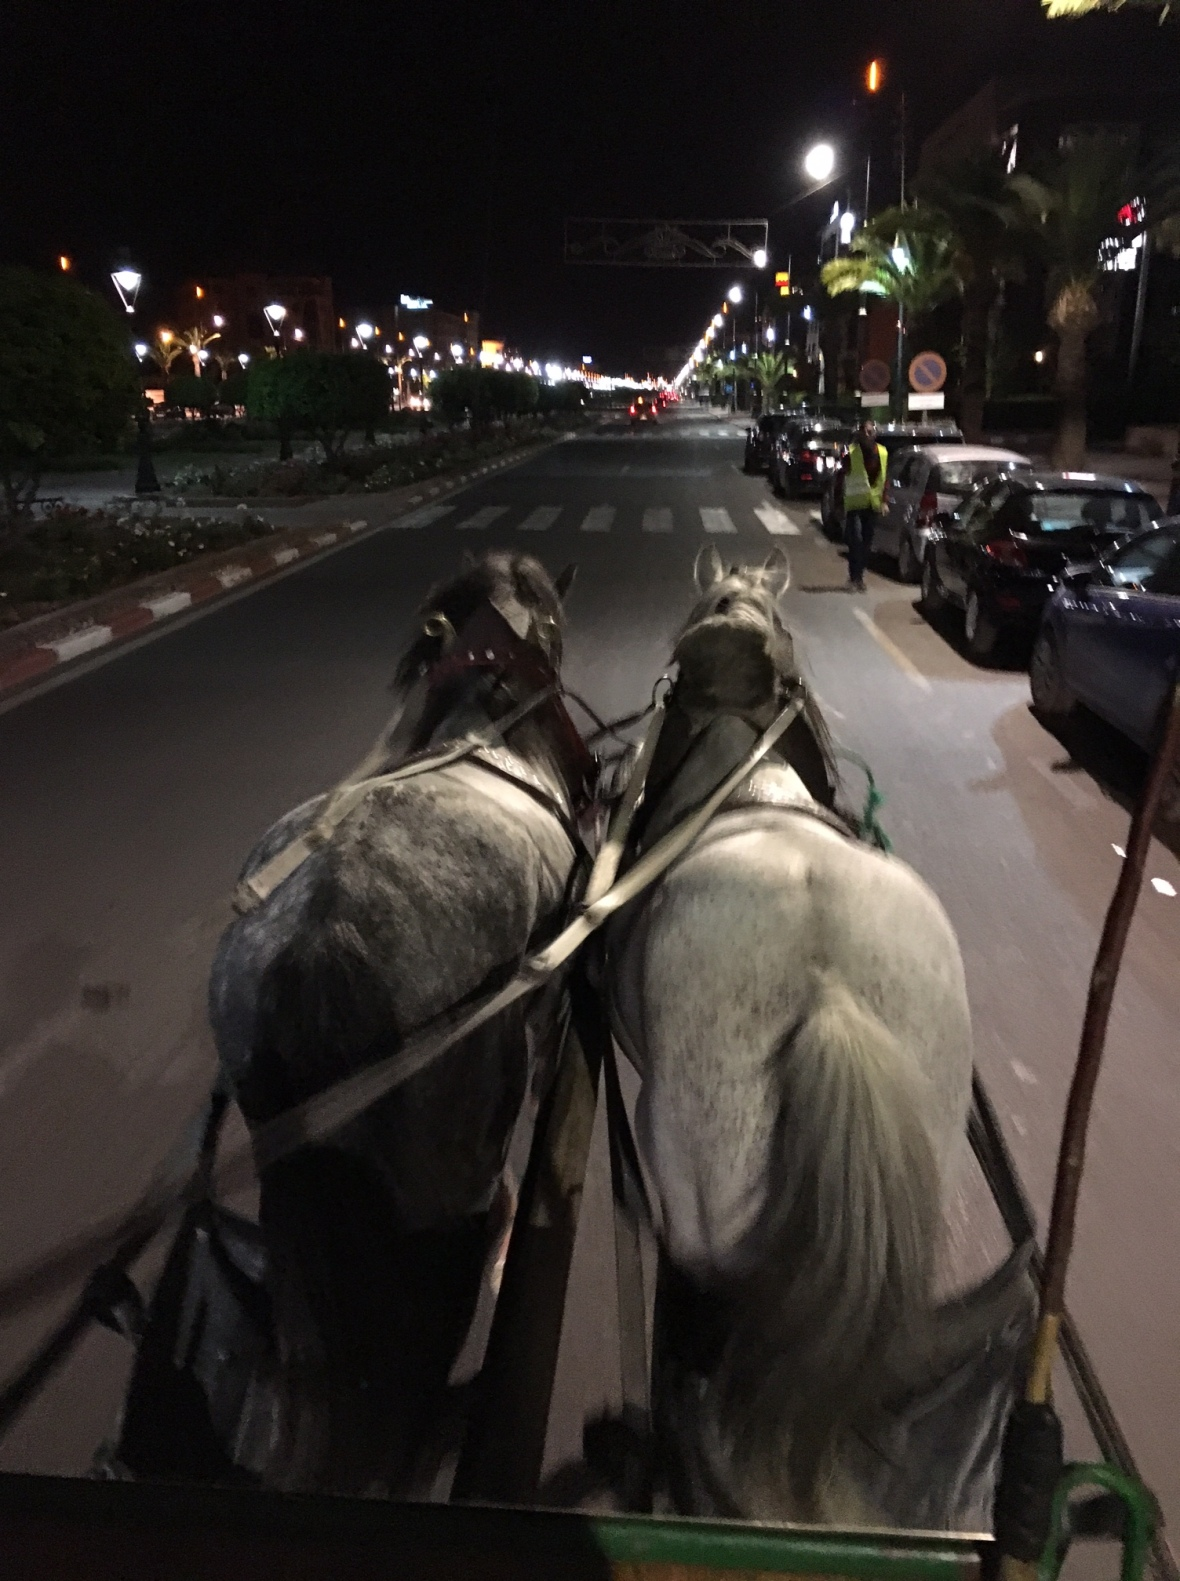 Horse And Carriage Ride by Nightfall, Marrakech, Morocco